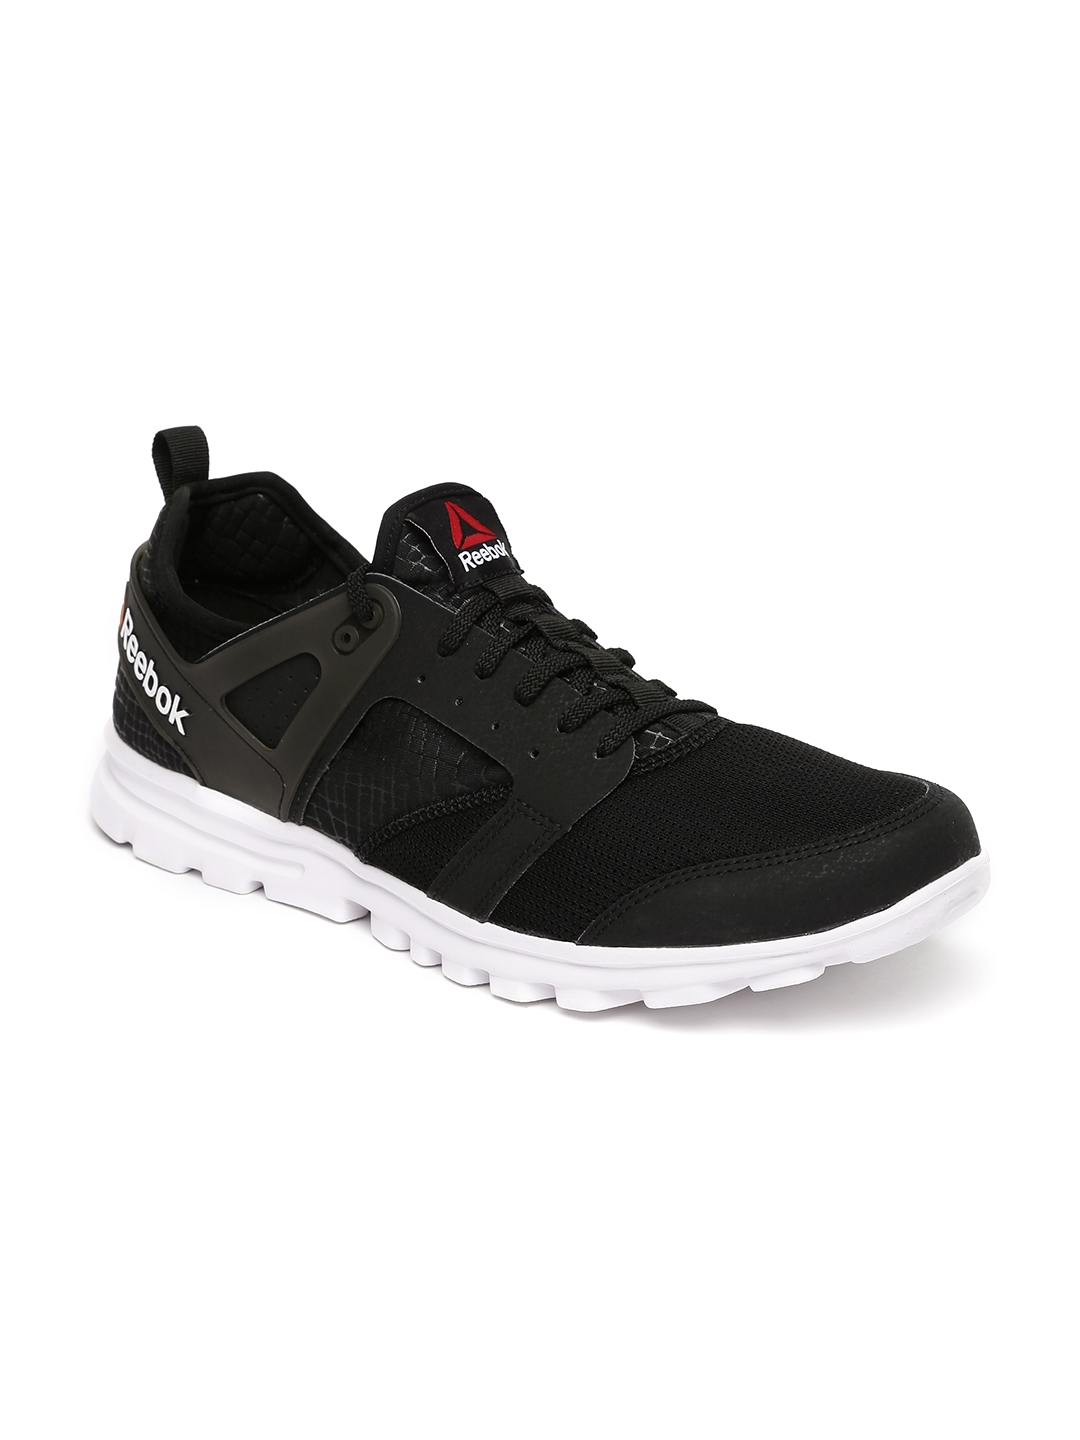 6880bb50848 reebok mens shoes cheap   OFF44% The Largest Catalog Discounts